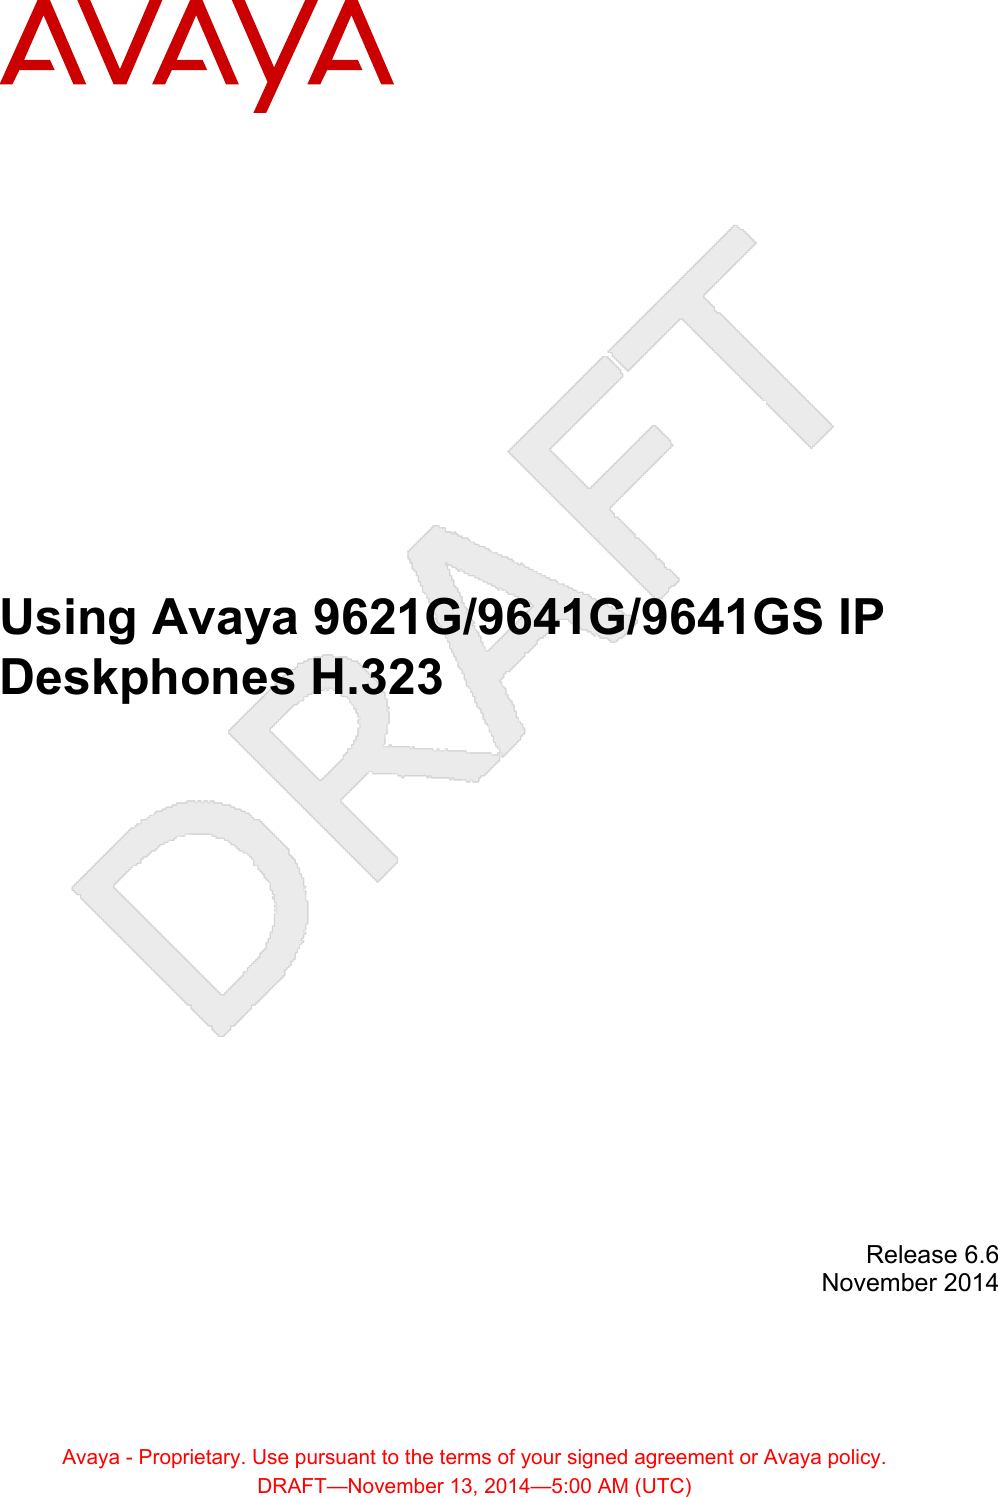 Avaya 9641GS IP Deskphone User Manual Using Avaya 9621G